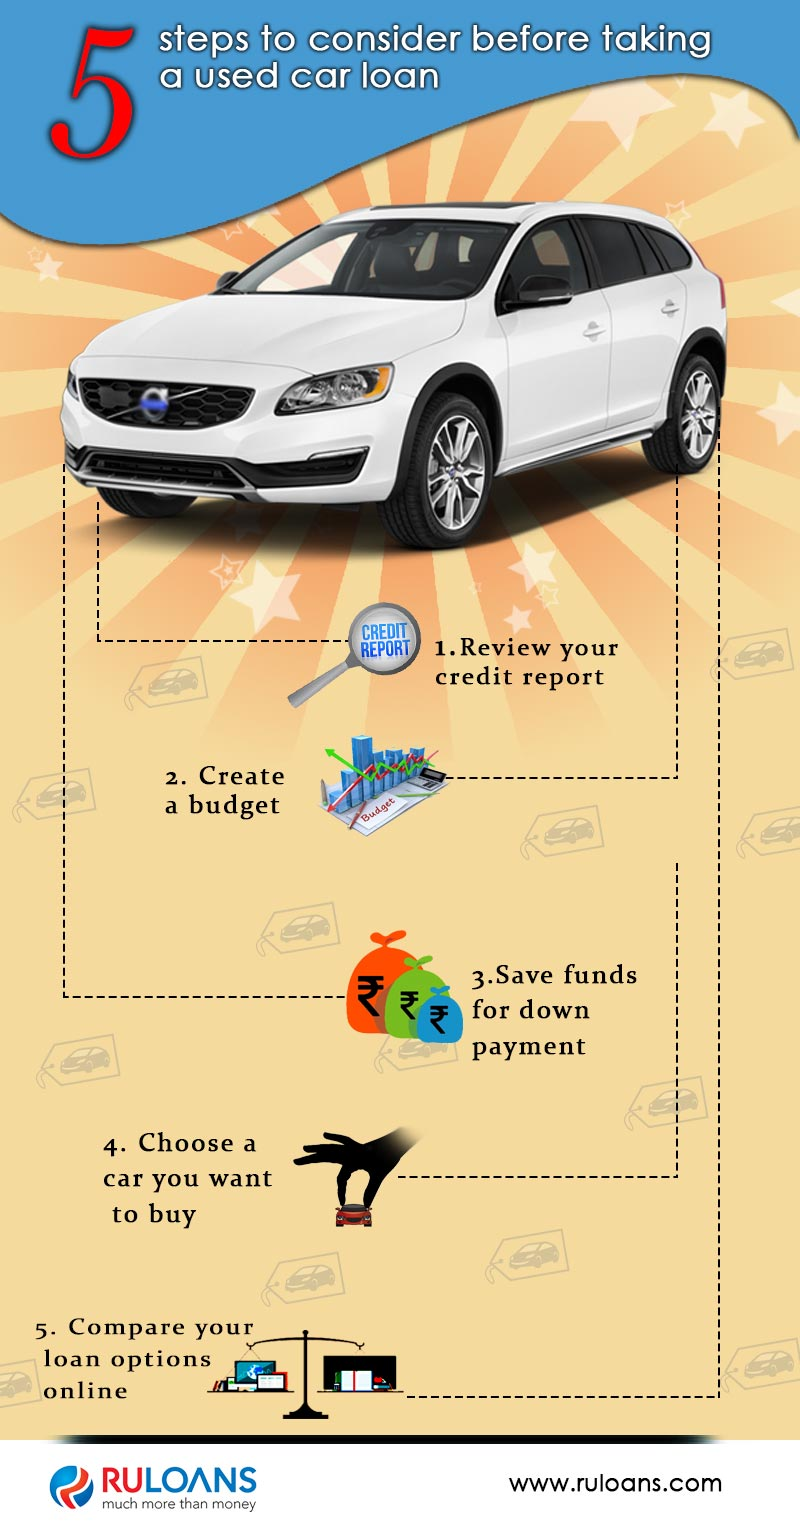 5-steps-to-consider-before-taking-a-used-car-loan